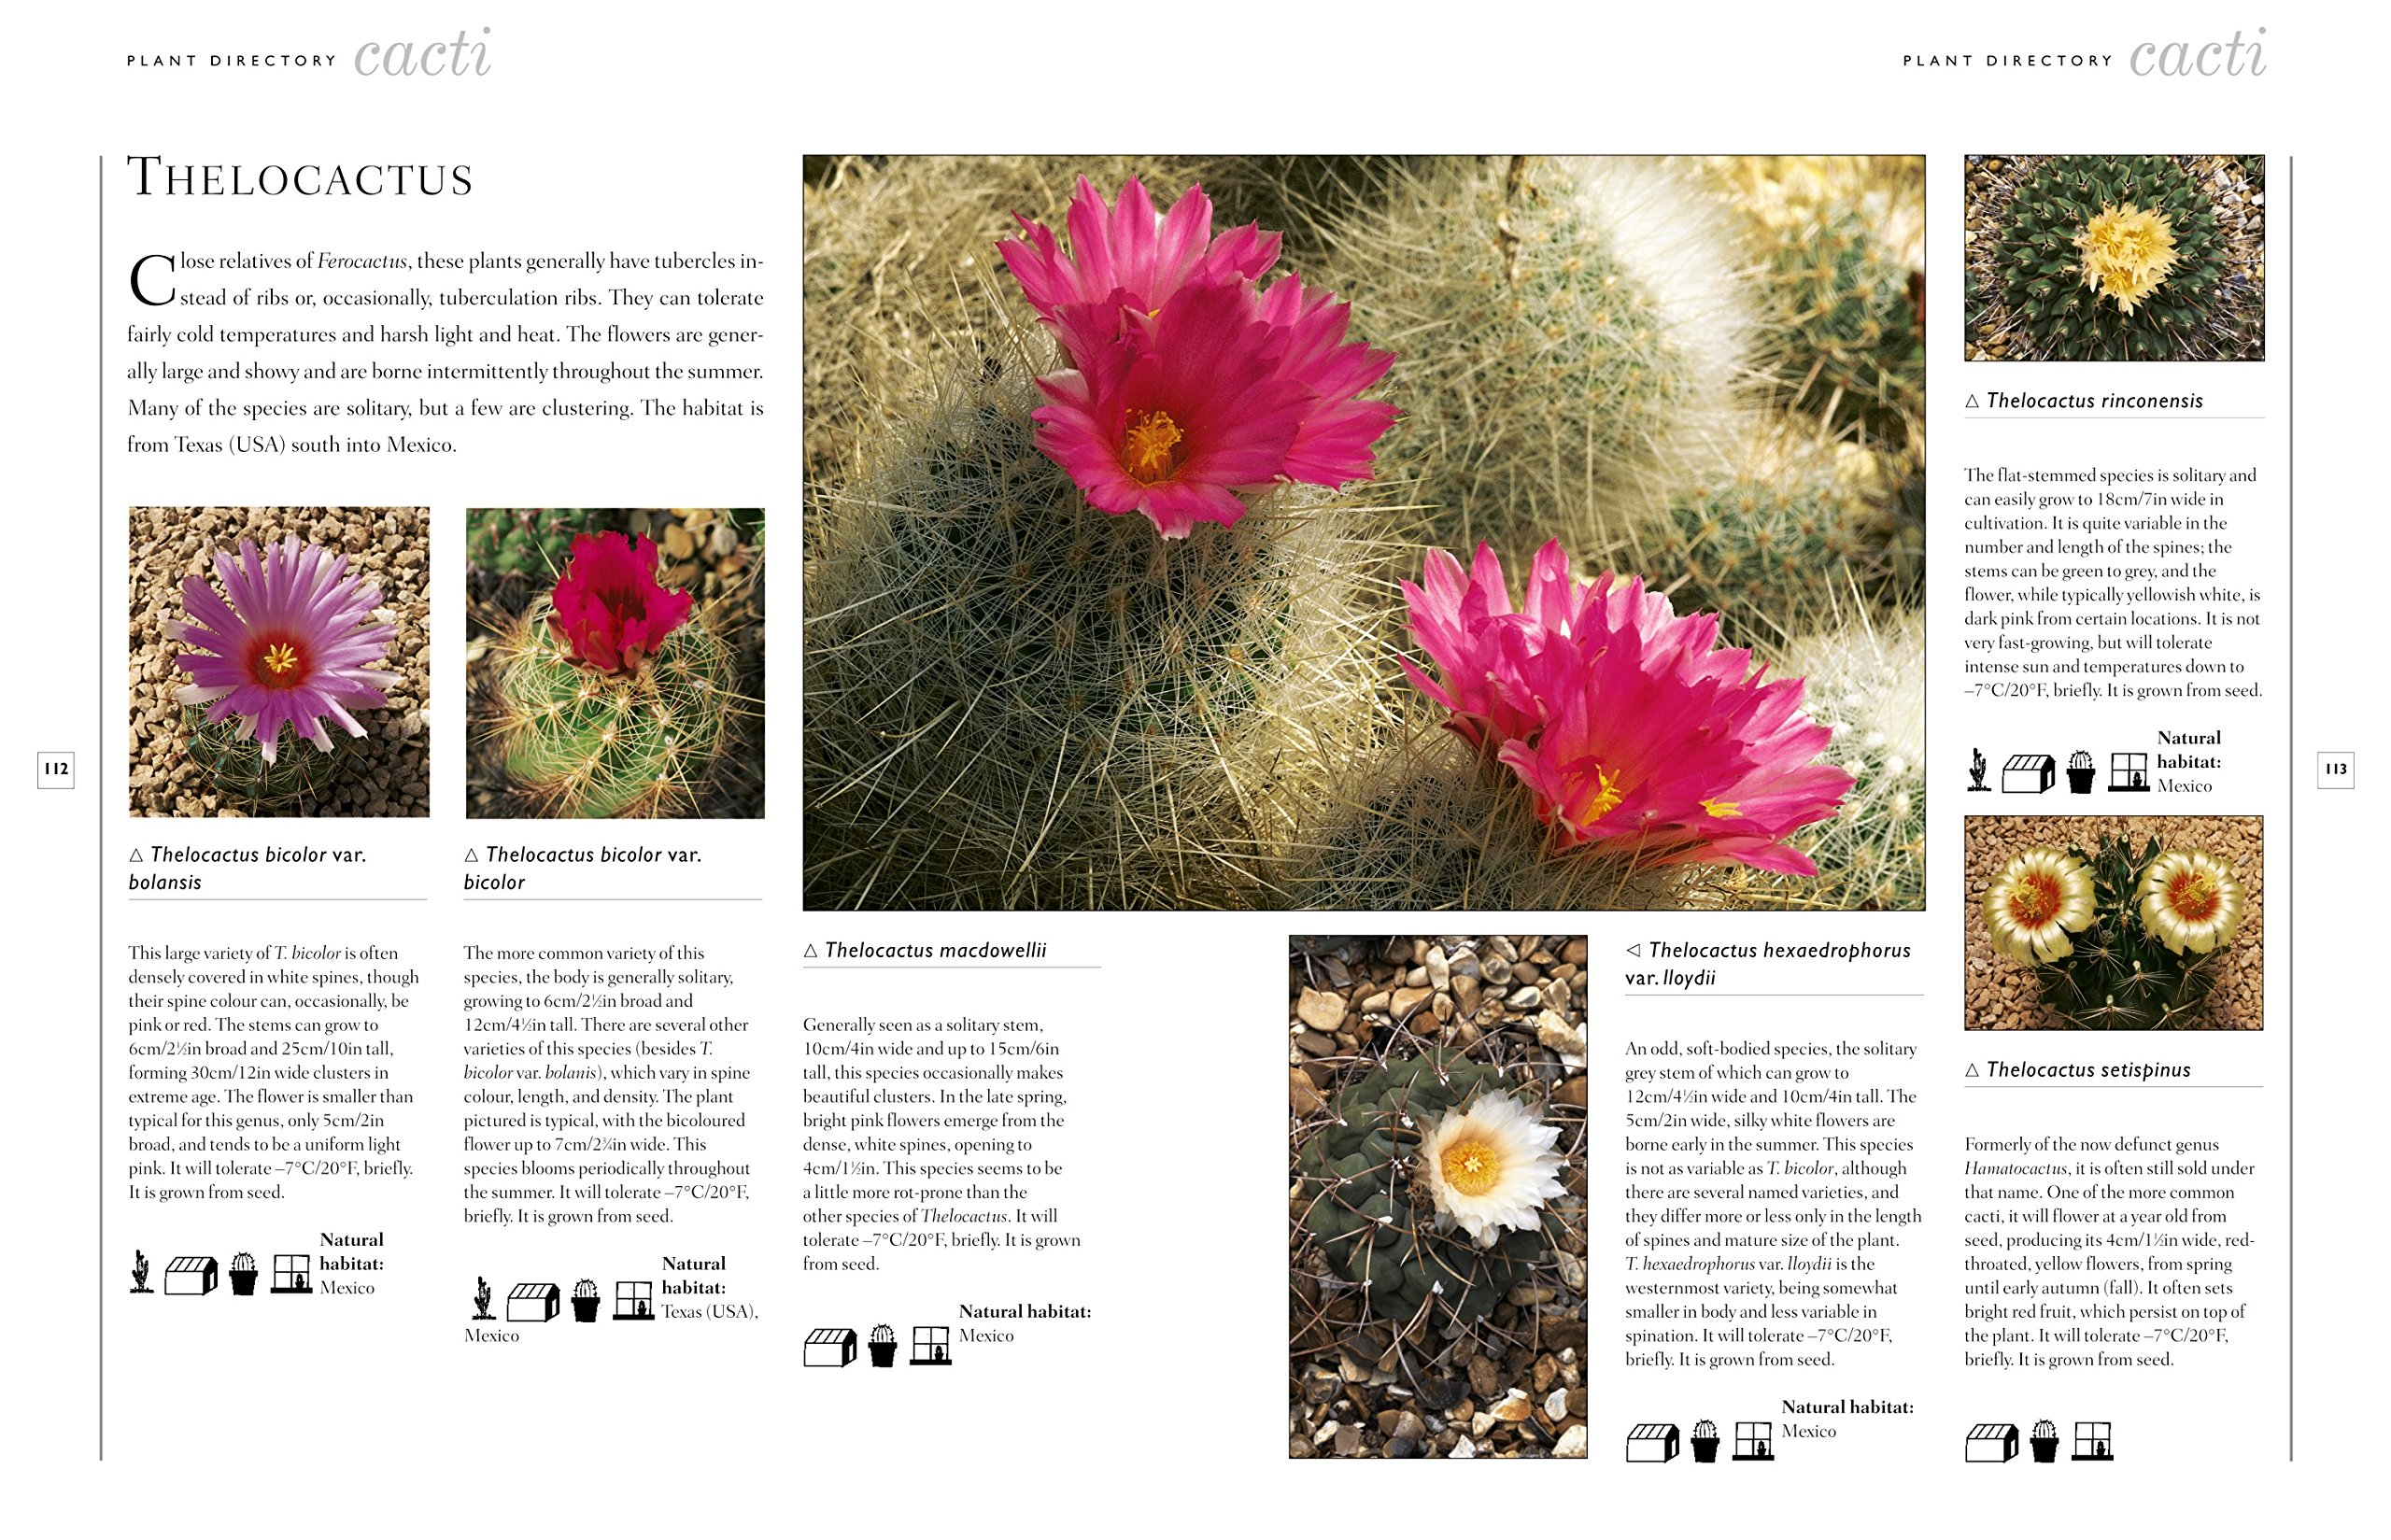 The Practical Illustrated Guide to Growing Cacti & Succulents: The Definitive Gardening Reference On Identification, Care And Cultivation, With A Directory Of 400 Varieties And 700 Photographs